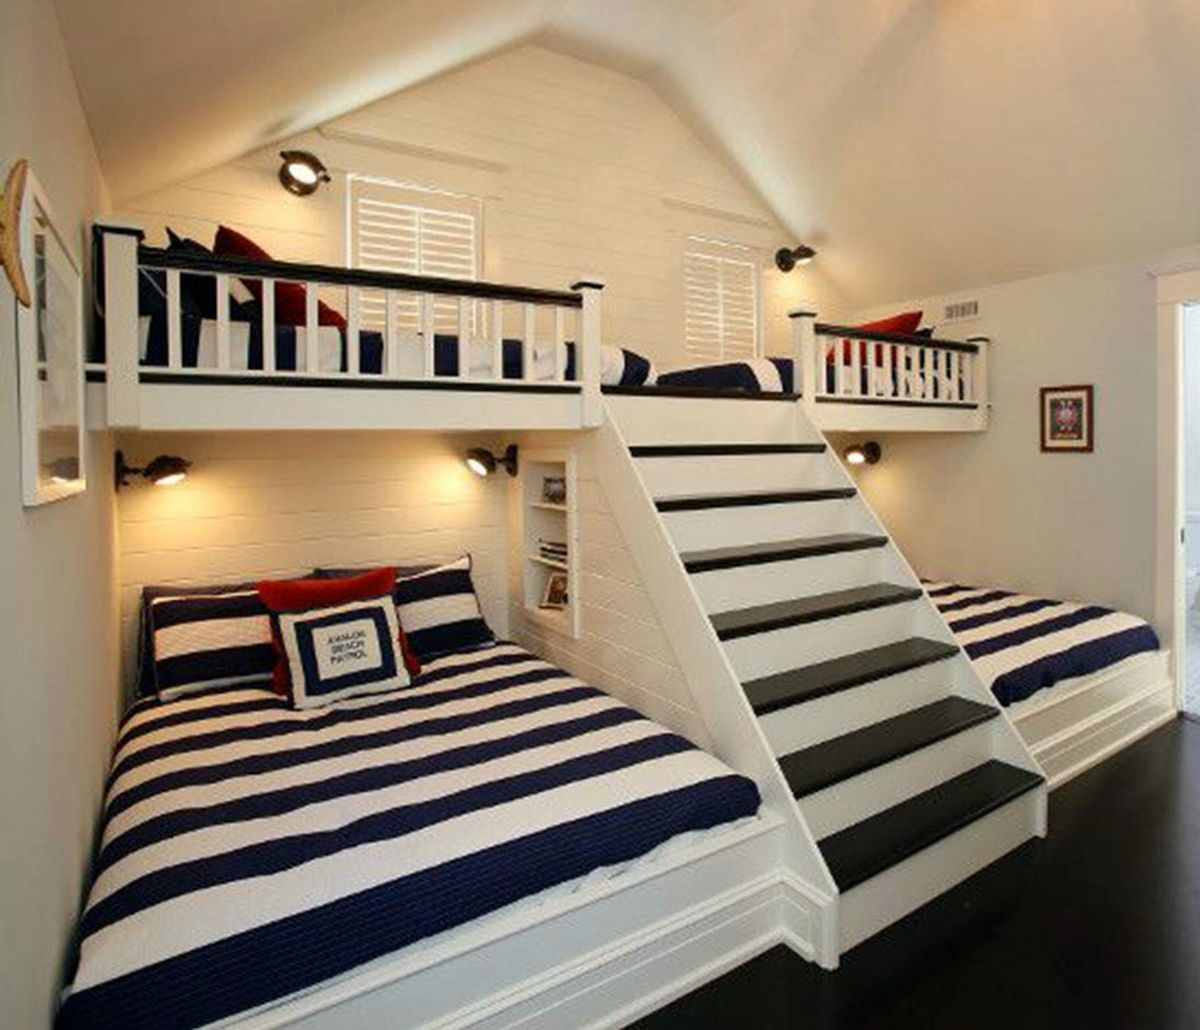 Awesome Way To Have More Space For Sleeping In A Tight Space. | Bedroom Design, Bunk Bed Designs, Home